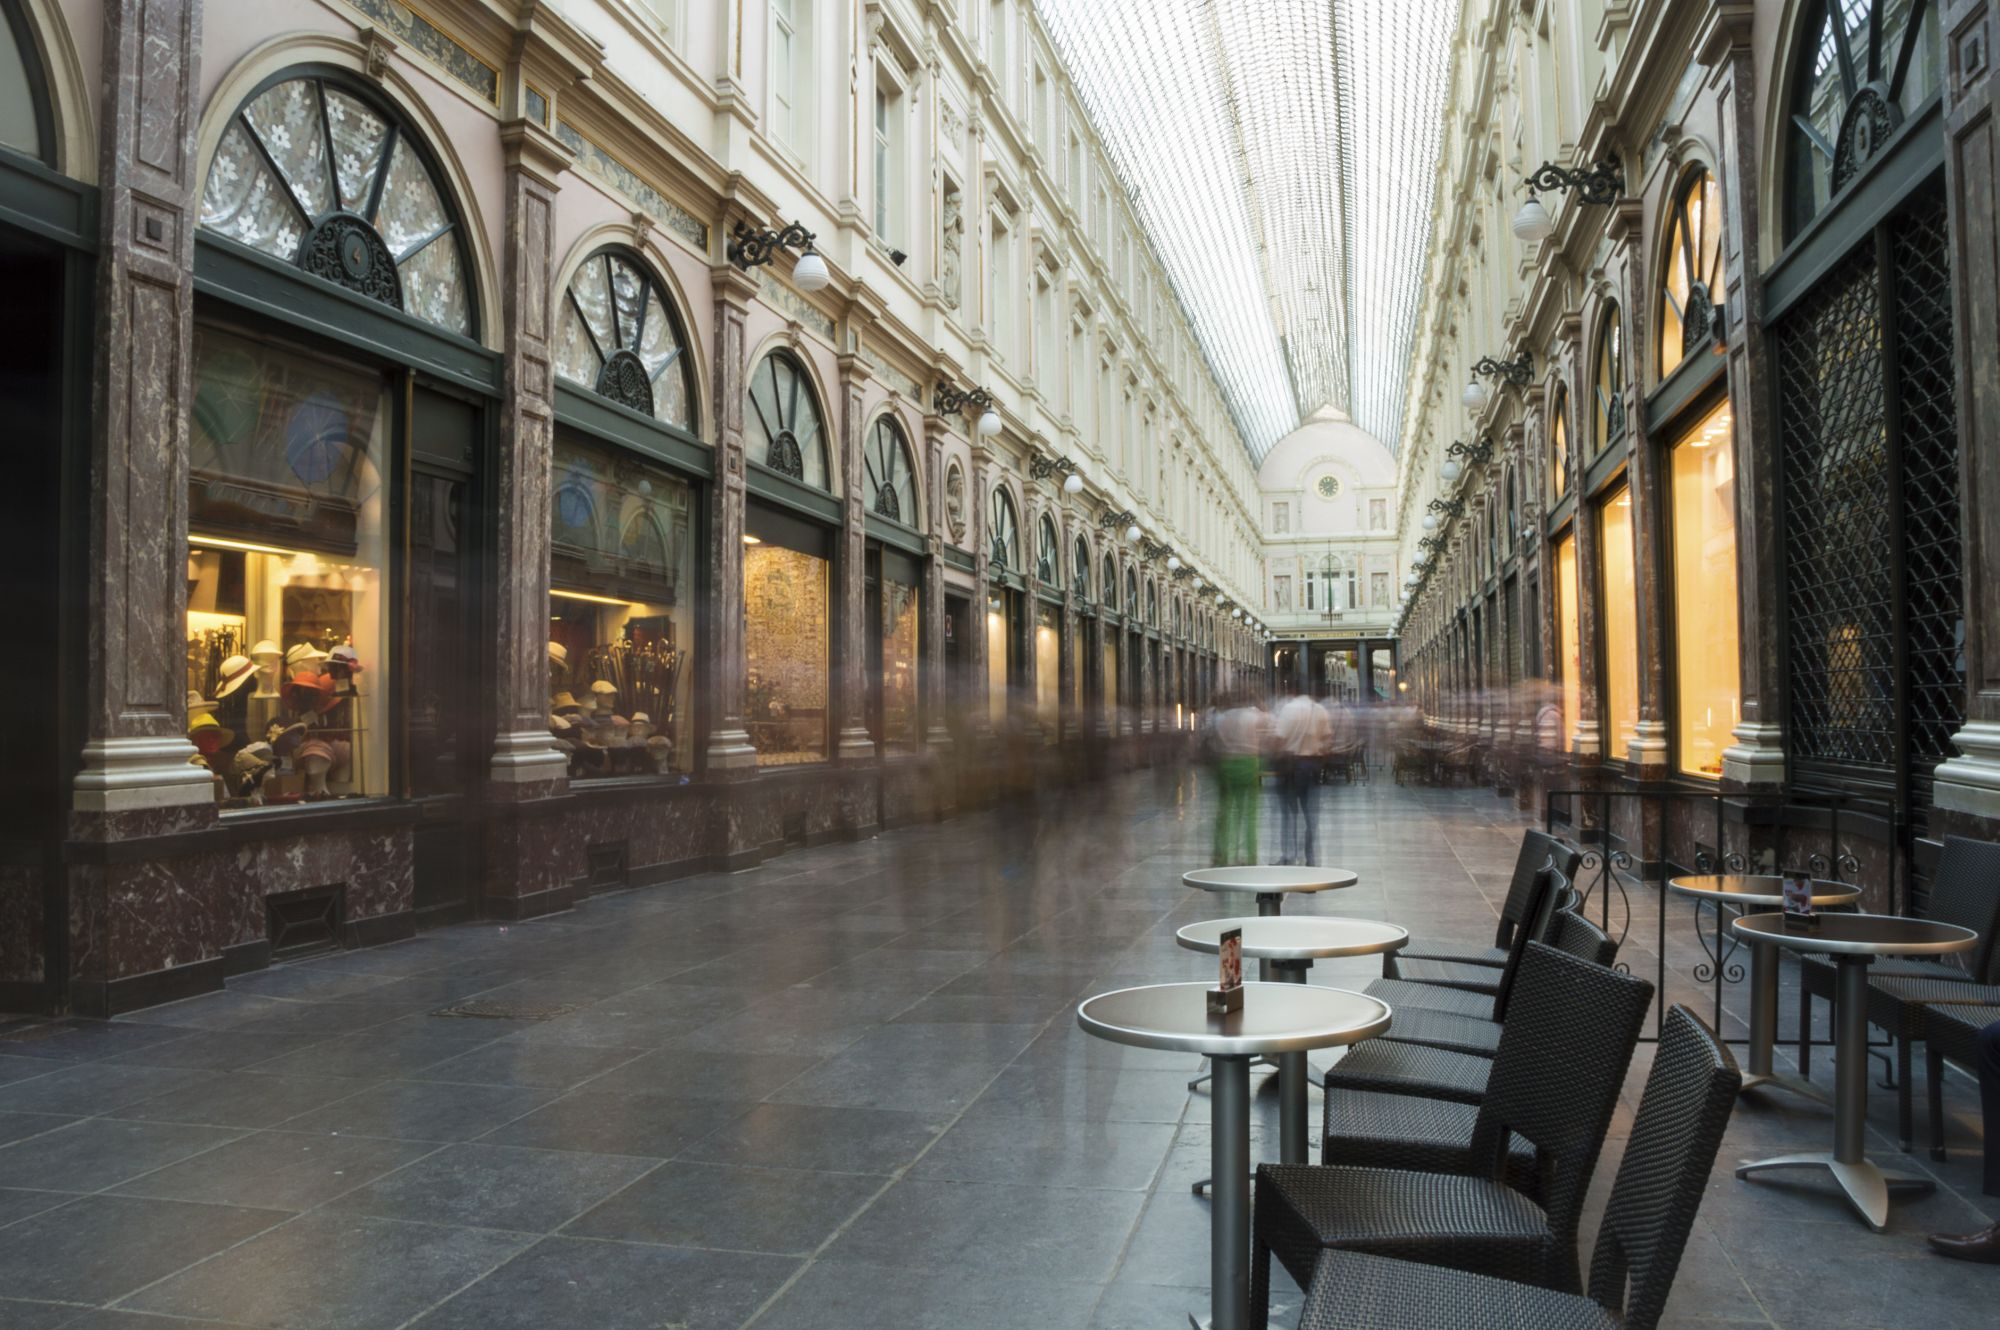 The Saint-Hubert royal galleries in Brussels (Galleries de la Reine), with a 200 meters long glass roof at a height of 8 meters. Since 2008 a UNESCO heritage site